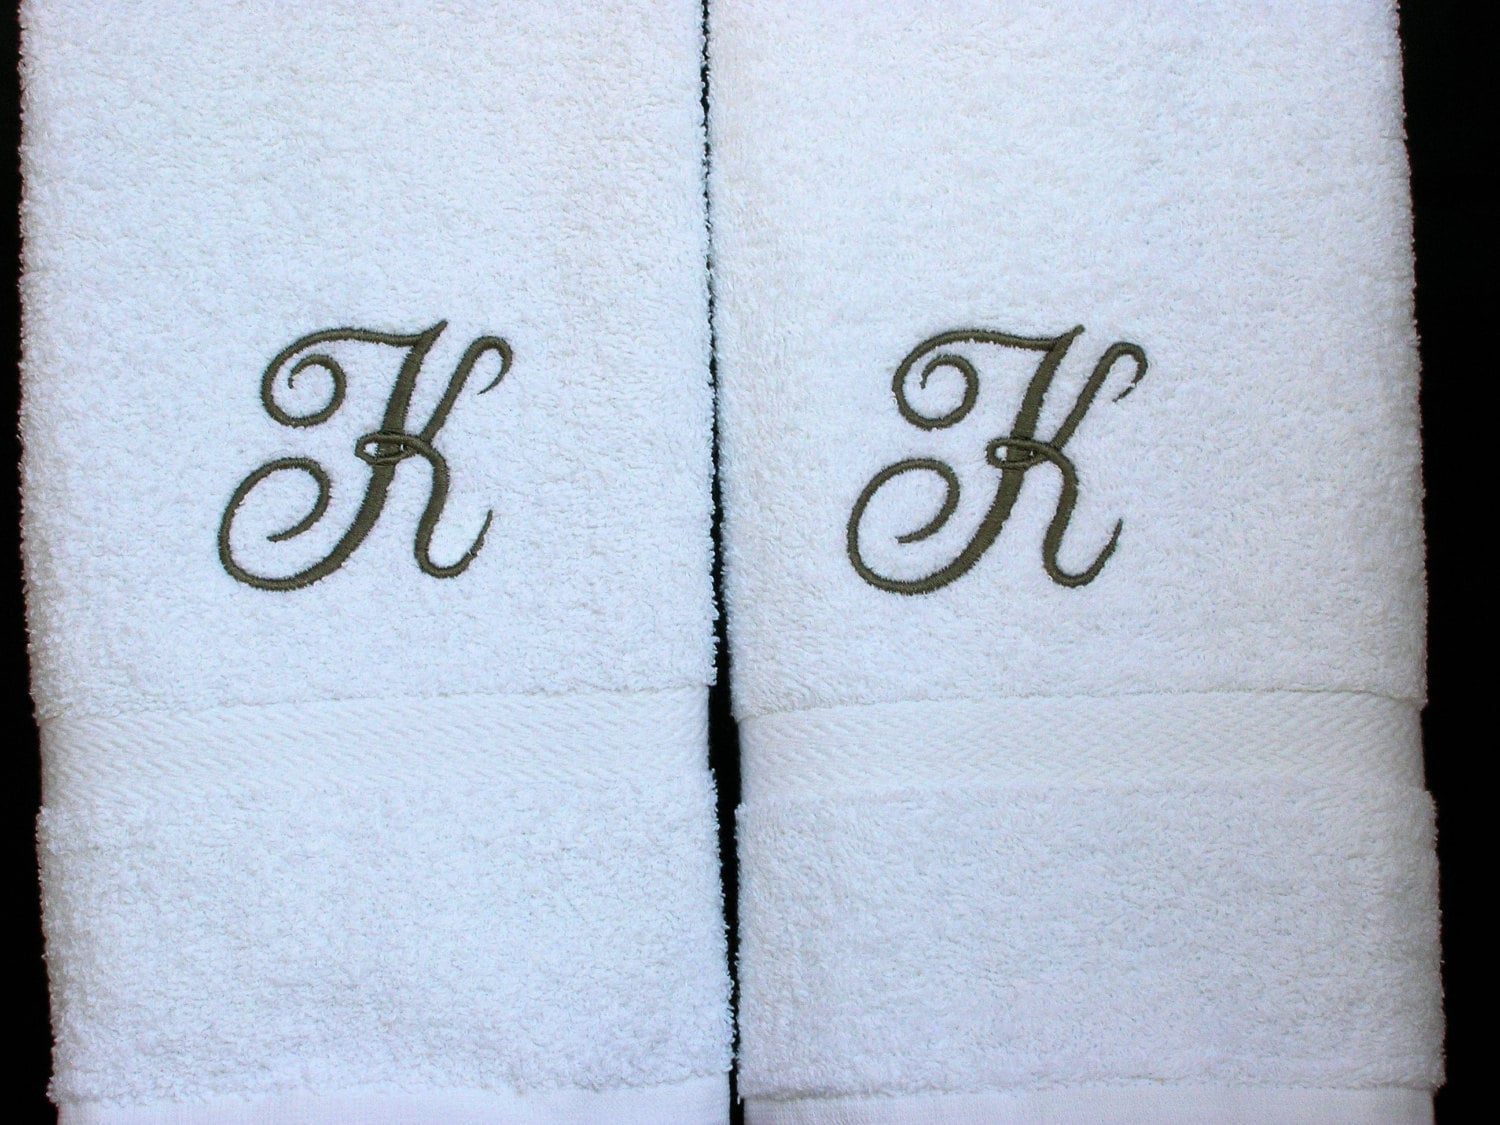 Monogrammed Towels Letter K Towels Cotton Hand Towels